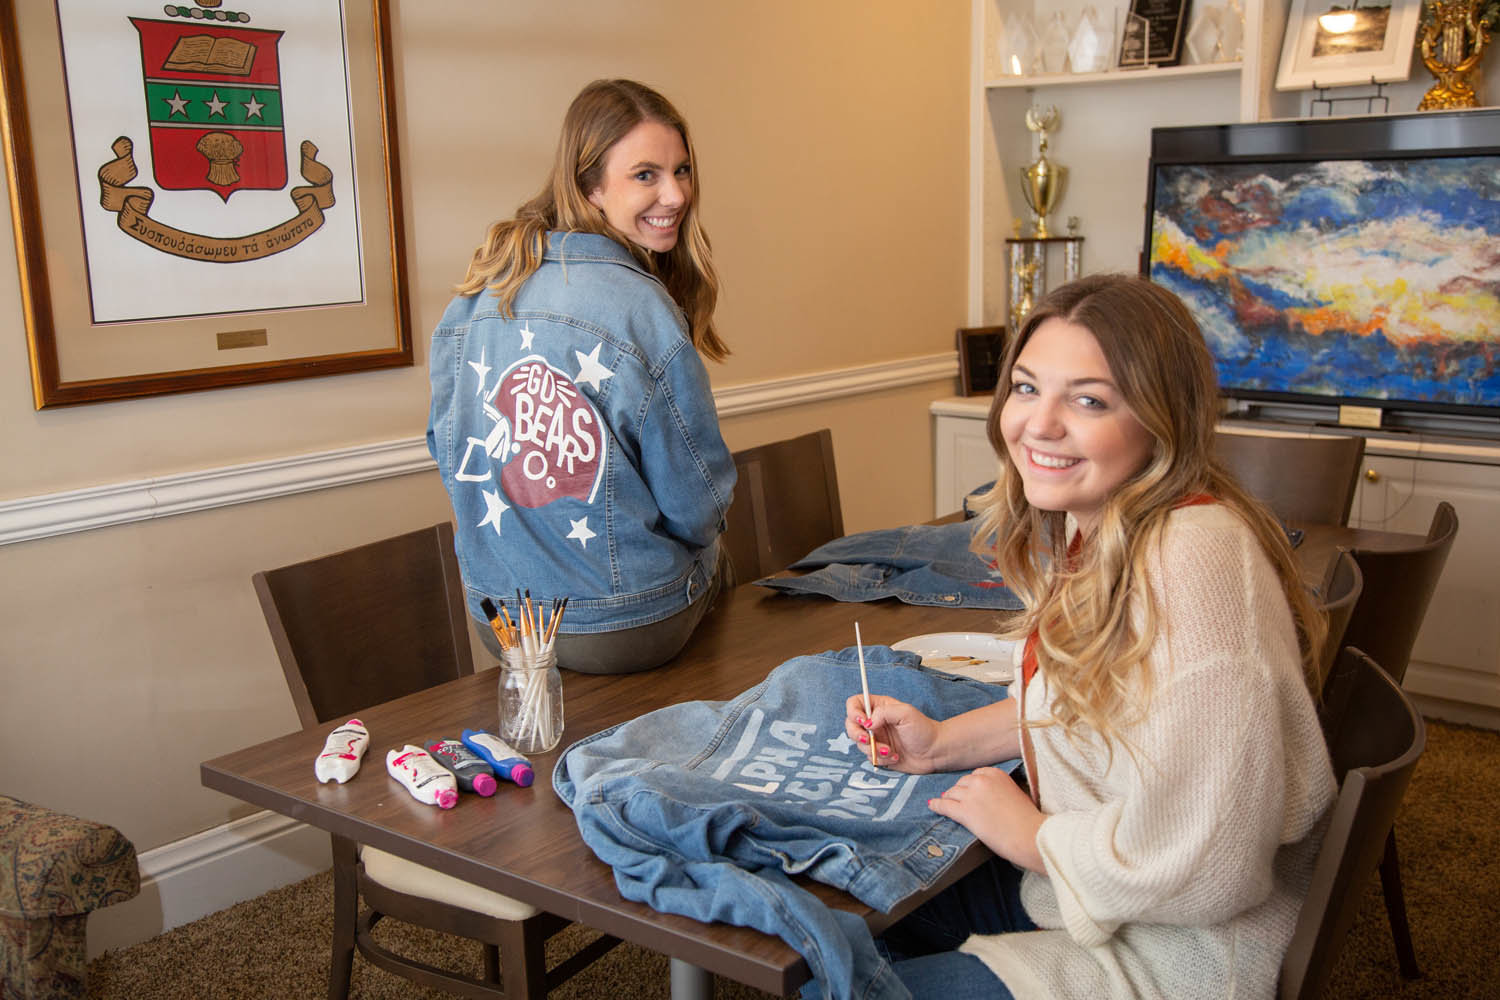 Missouri State University sophomores Jesse Romano, left, and Katie Sulzner plan to continue their small-business venture at least through college.